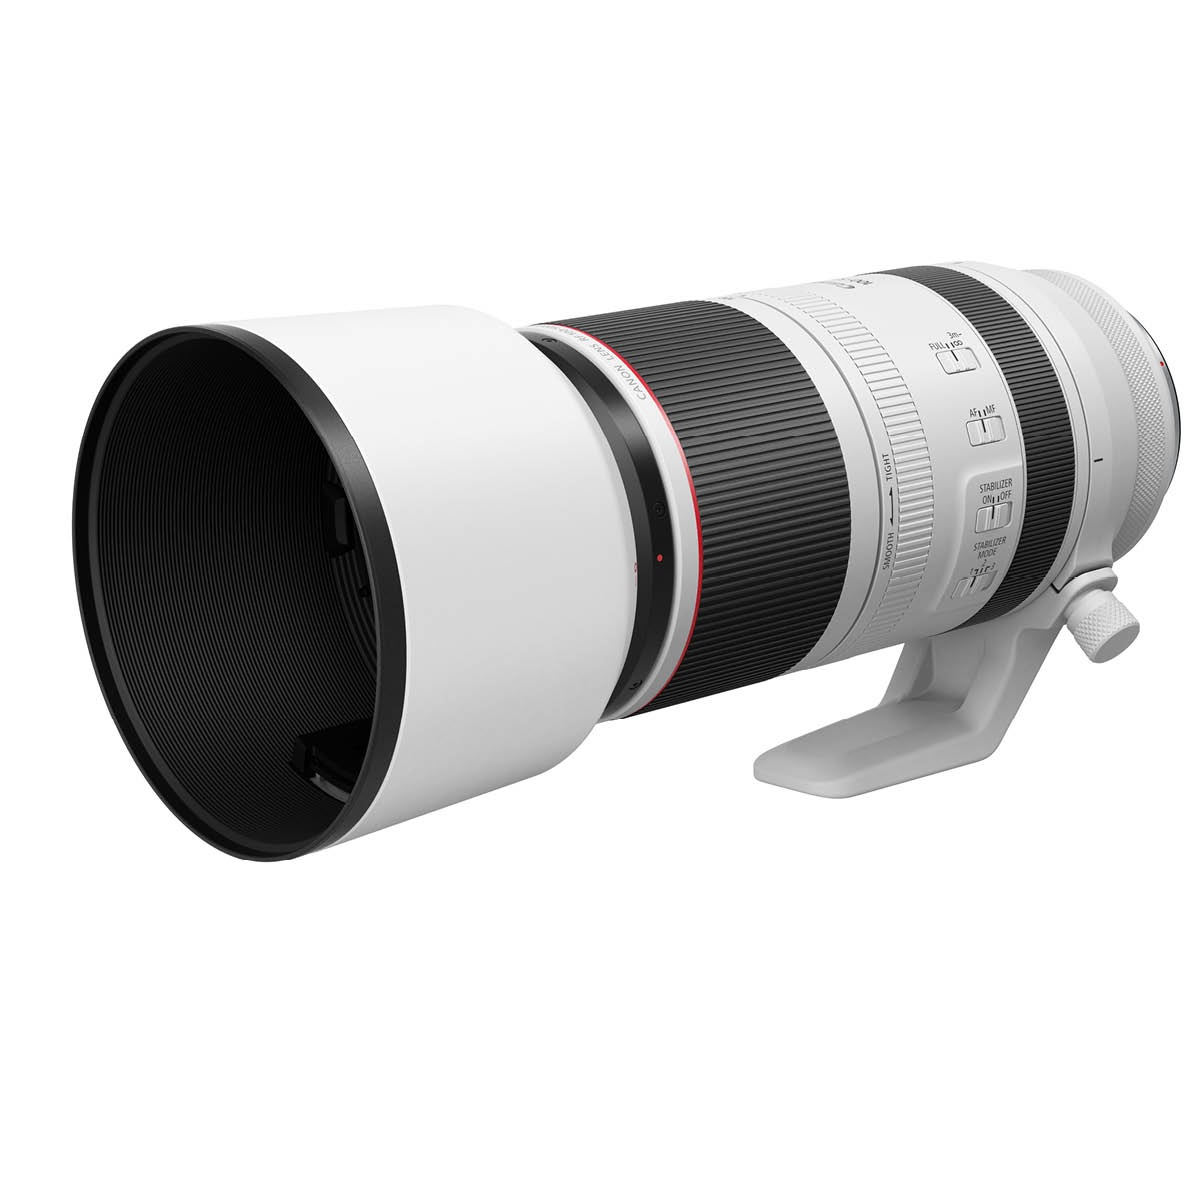 Canon RF 100-500 mm 1: 4.5-7.1 L IS USM